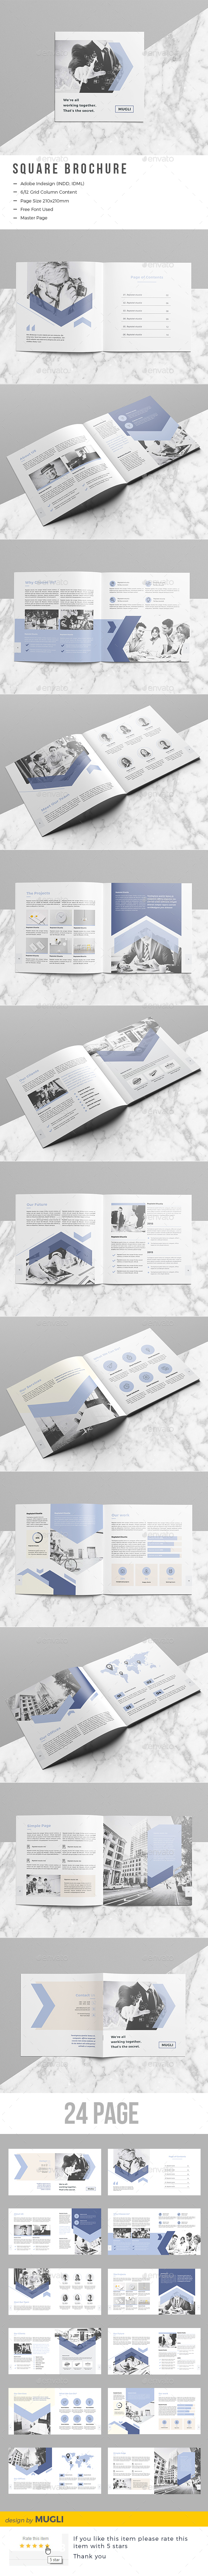 Company Square Brochure - Corporate Brochures